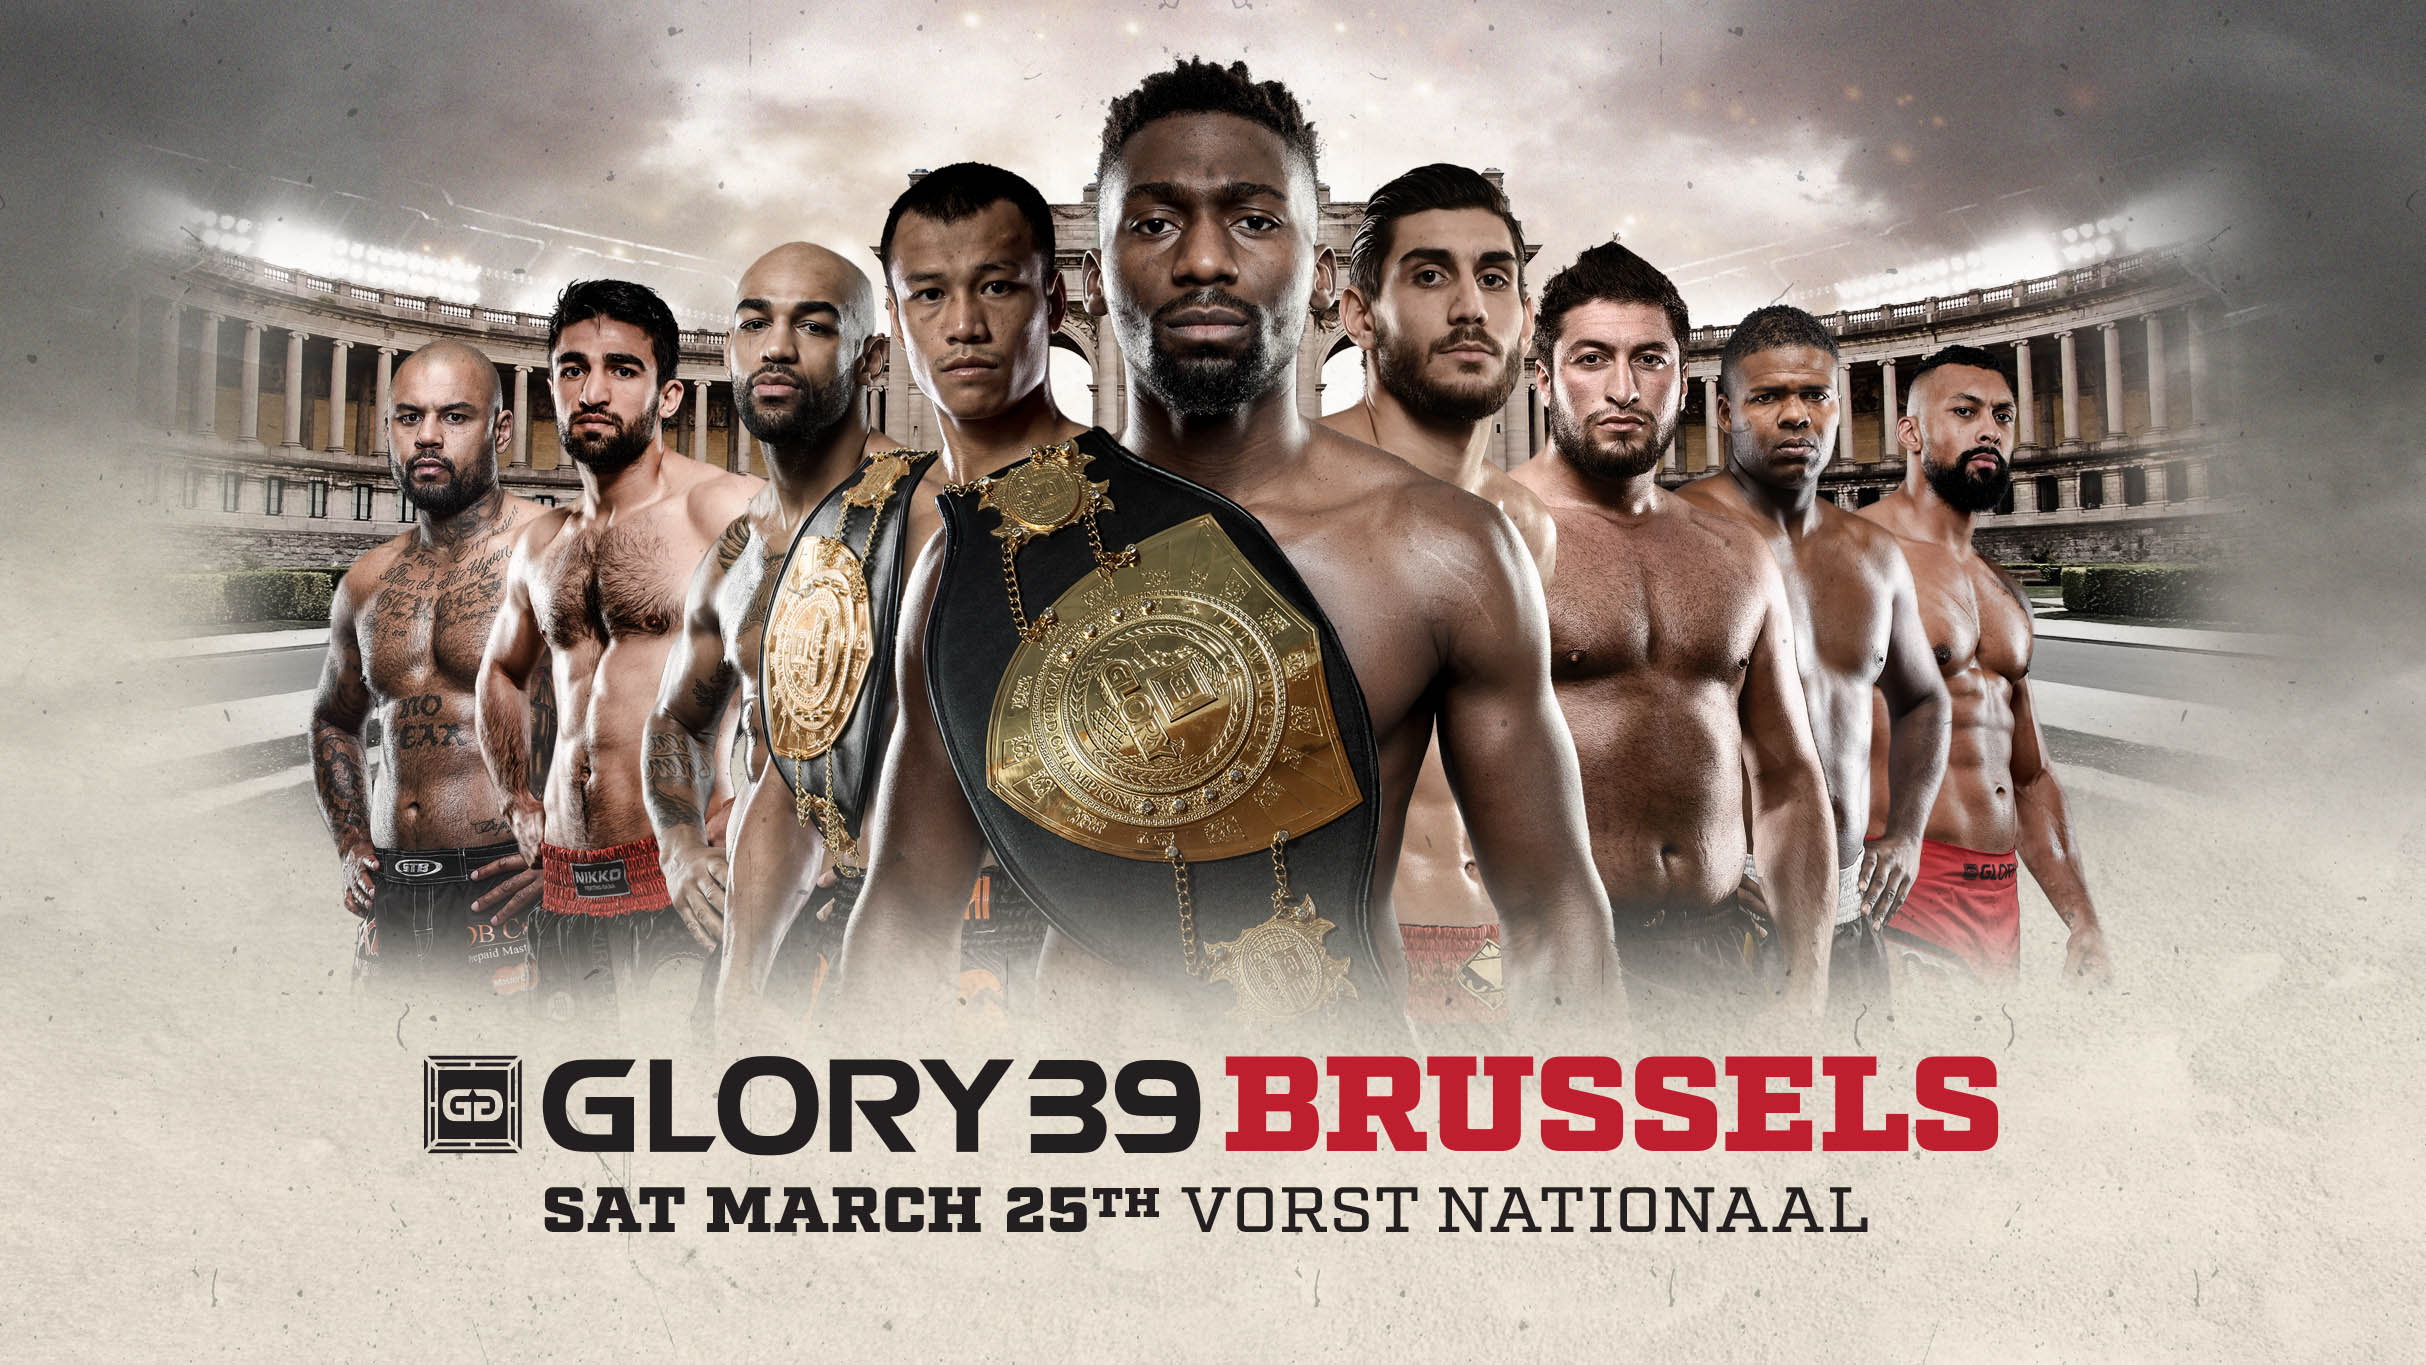 Glory 39 On Live PPV This Saturday - InPlayer Paywall